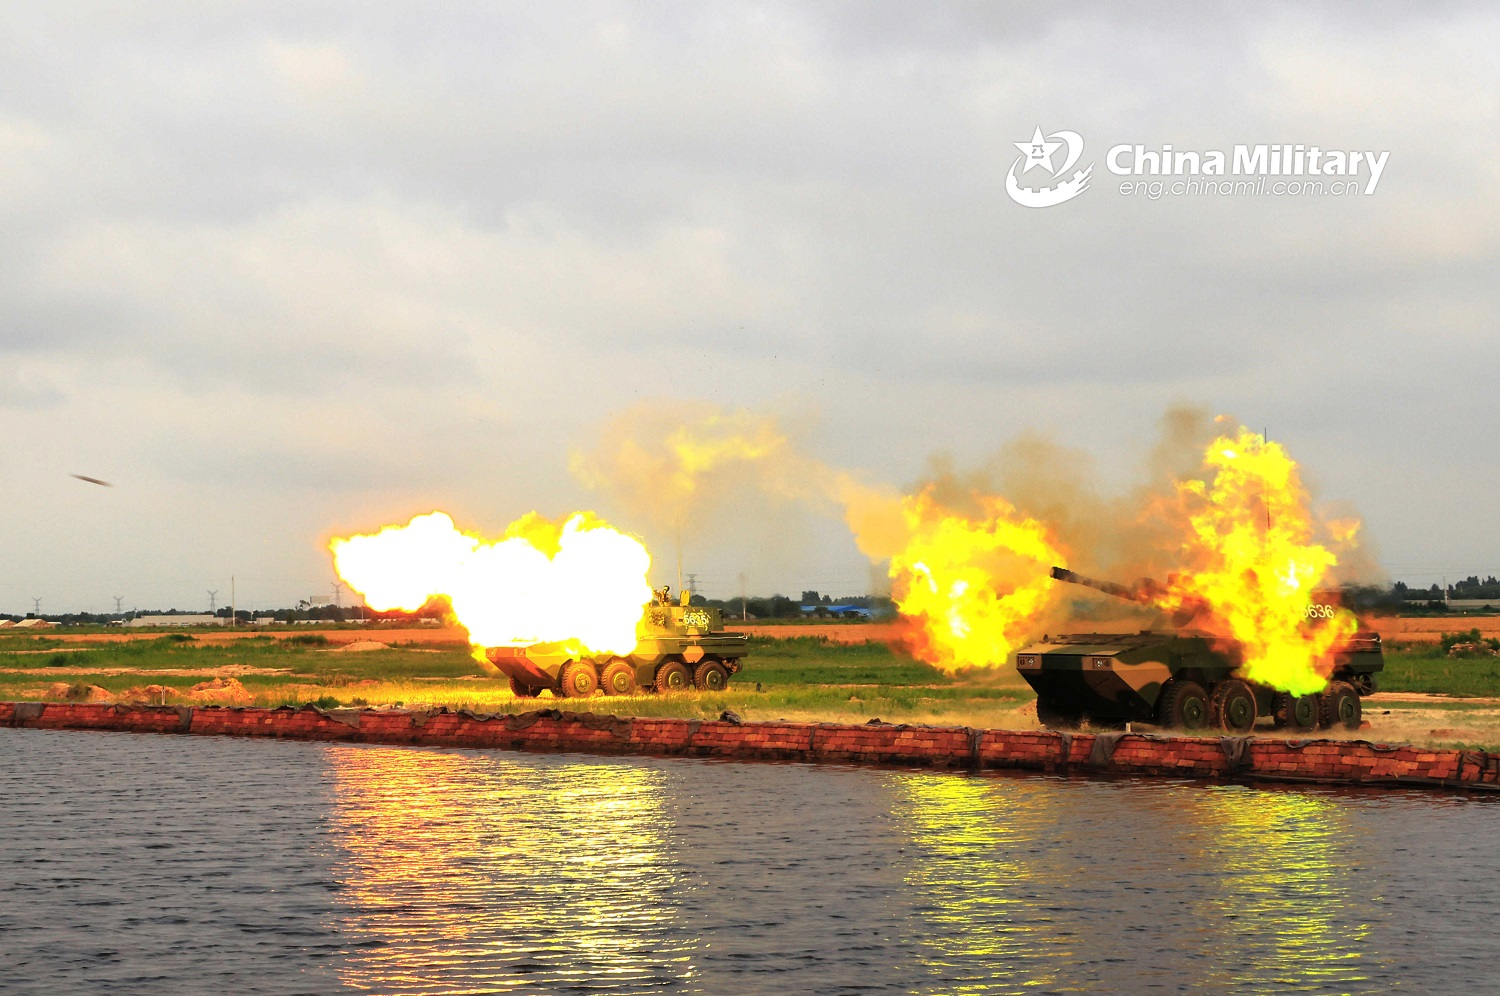 Chinese PLAN Marine Corps PLL-09 Self-propelled Howitzer Conducts Live Firing Drills